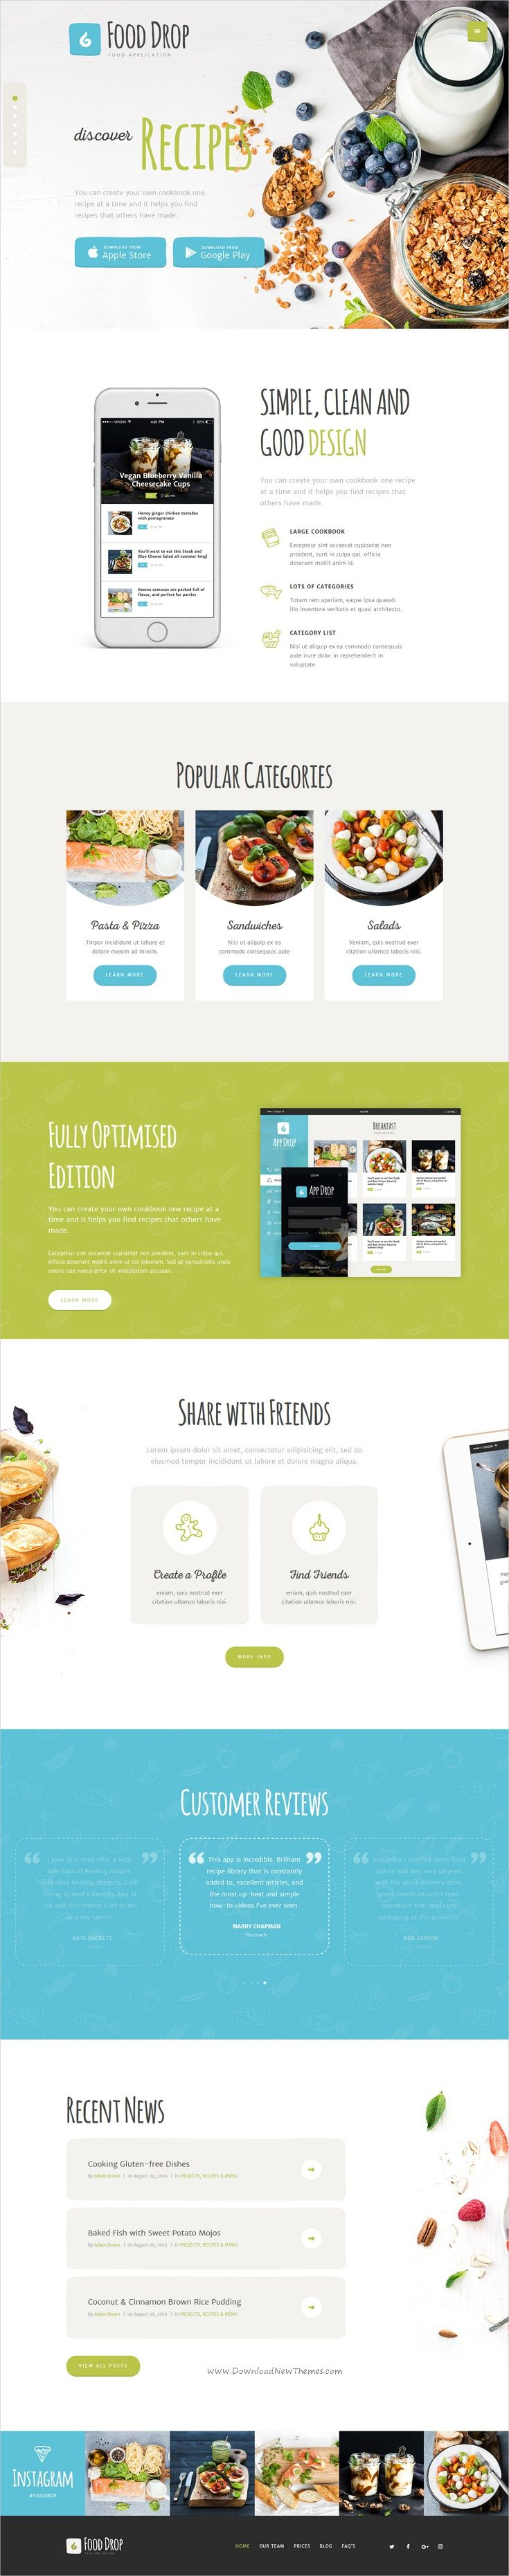 Food Drop is a stylish and powerful #WordPress theme created for online #food ordering and food #delivery application websites download now➩ https://themeforest.net/item/food-drop-food-ordering-delivery-app/19357492?ref=Datasata